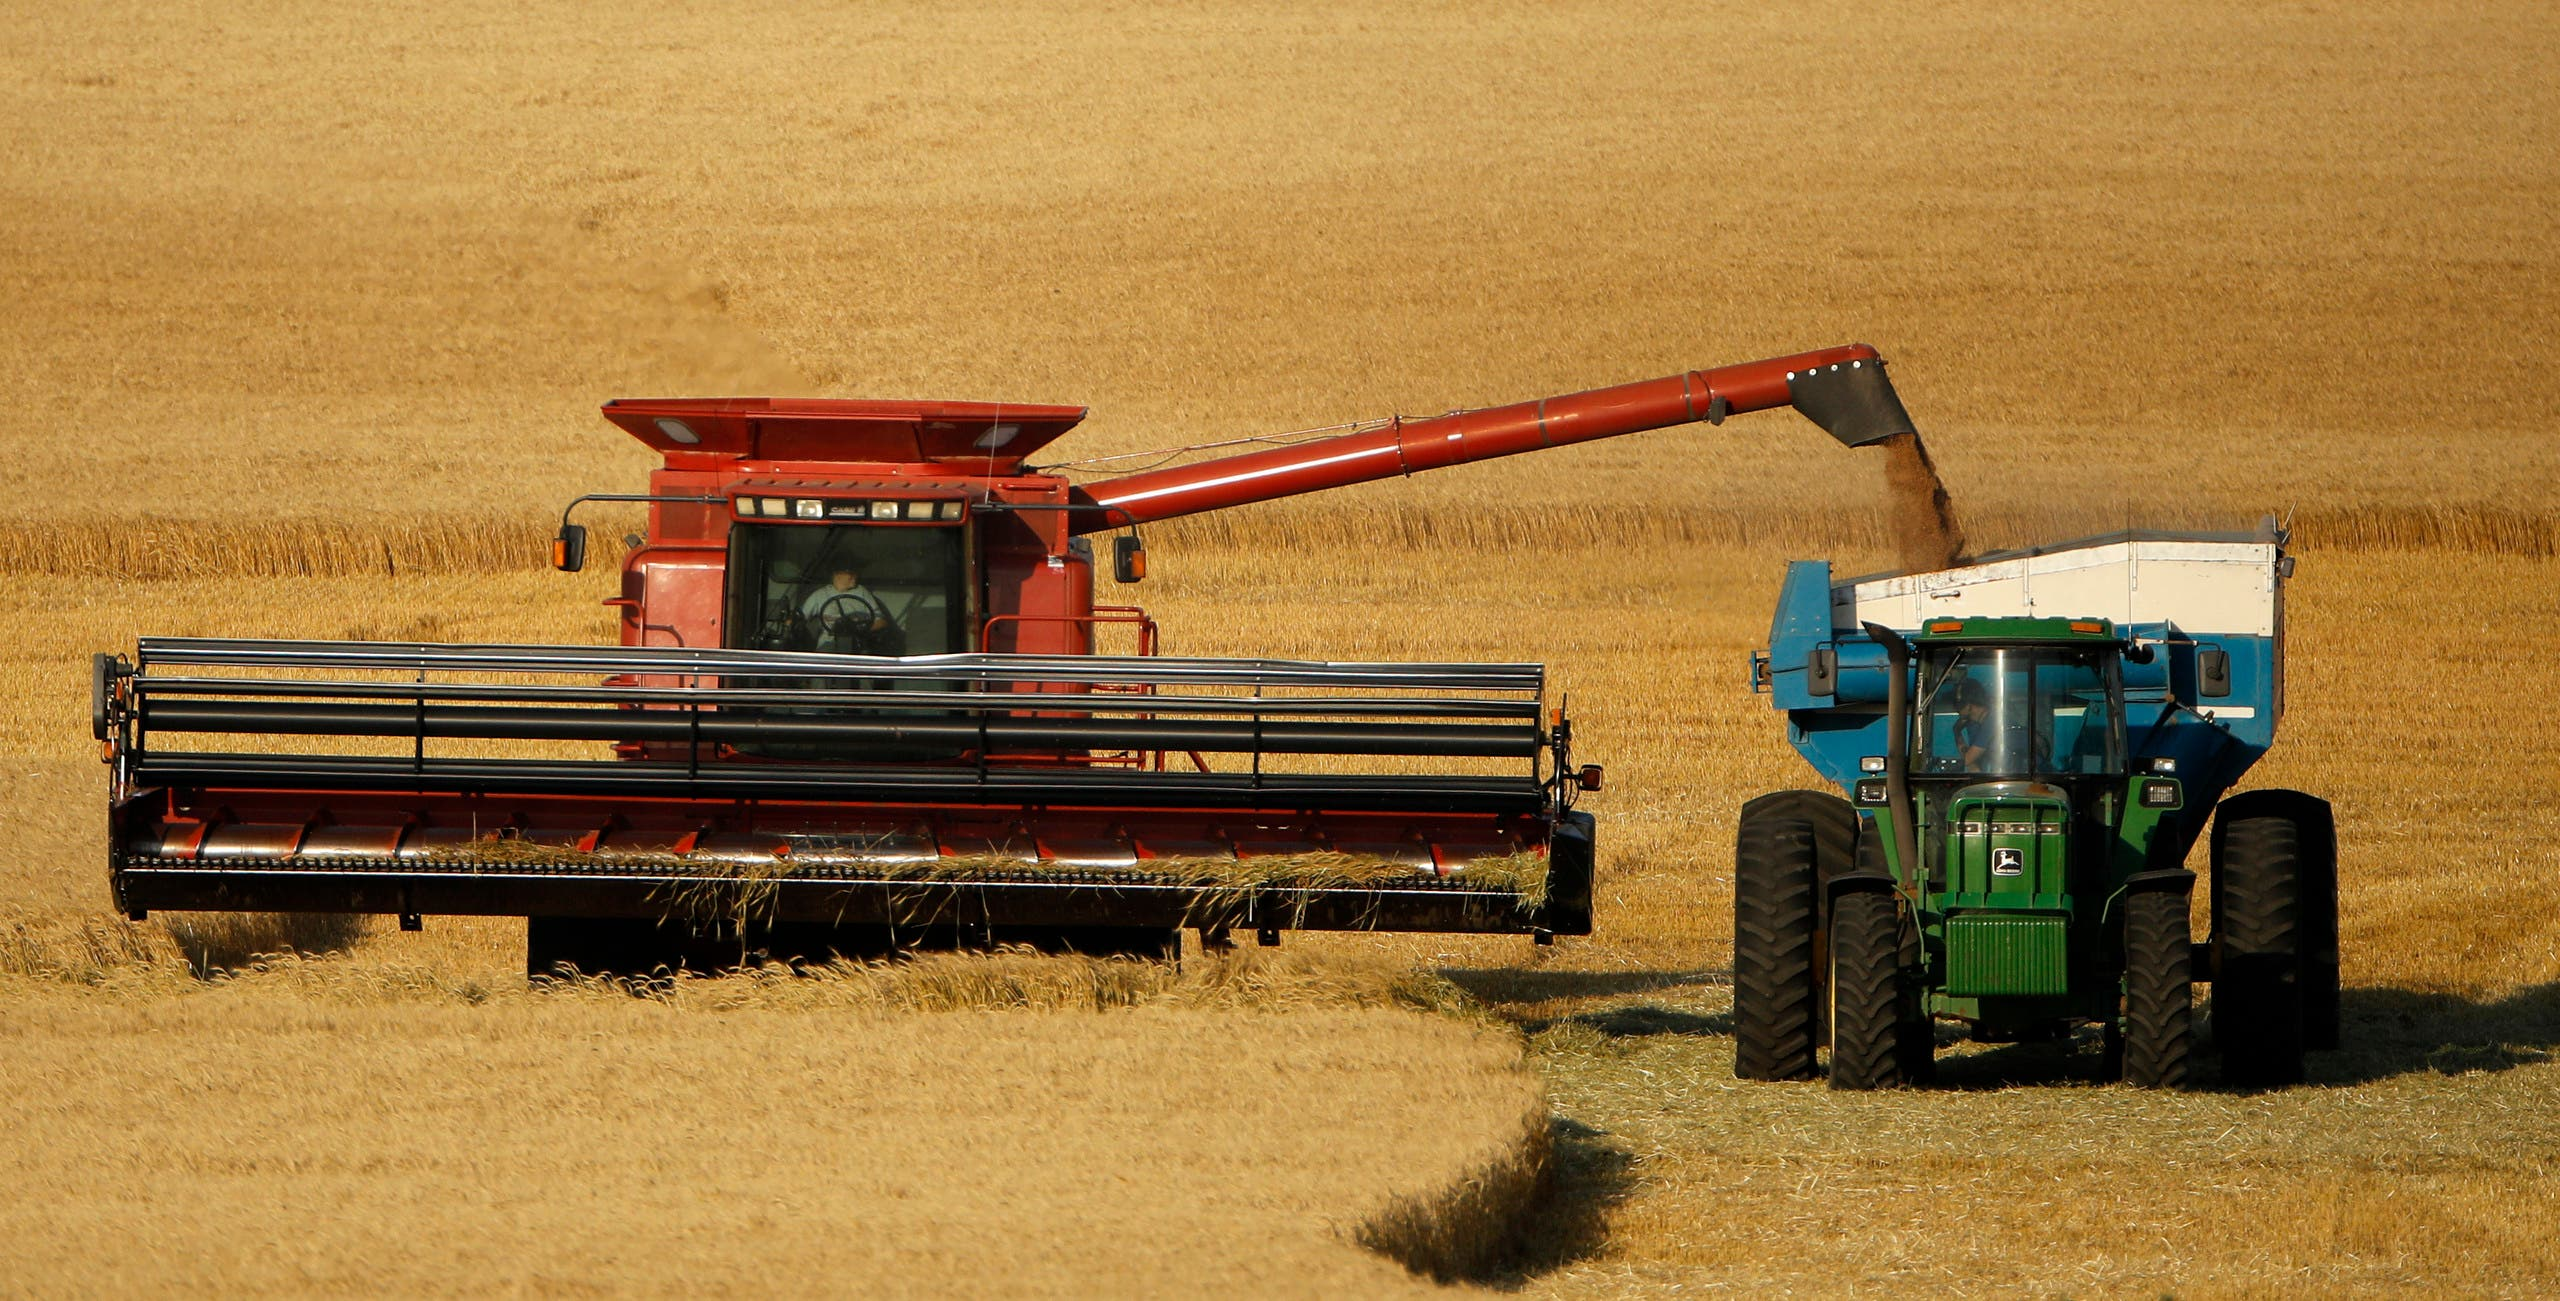 In this June 15, 2018 photo, winter wheat is harvested in a field farmed by Dalton and Carson North near McCracken, Kansas, US. (File photo: The Associated Press)